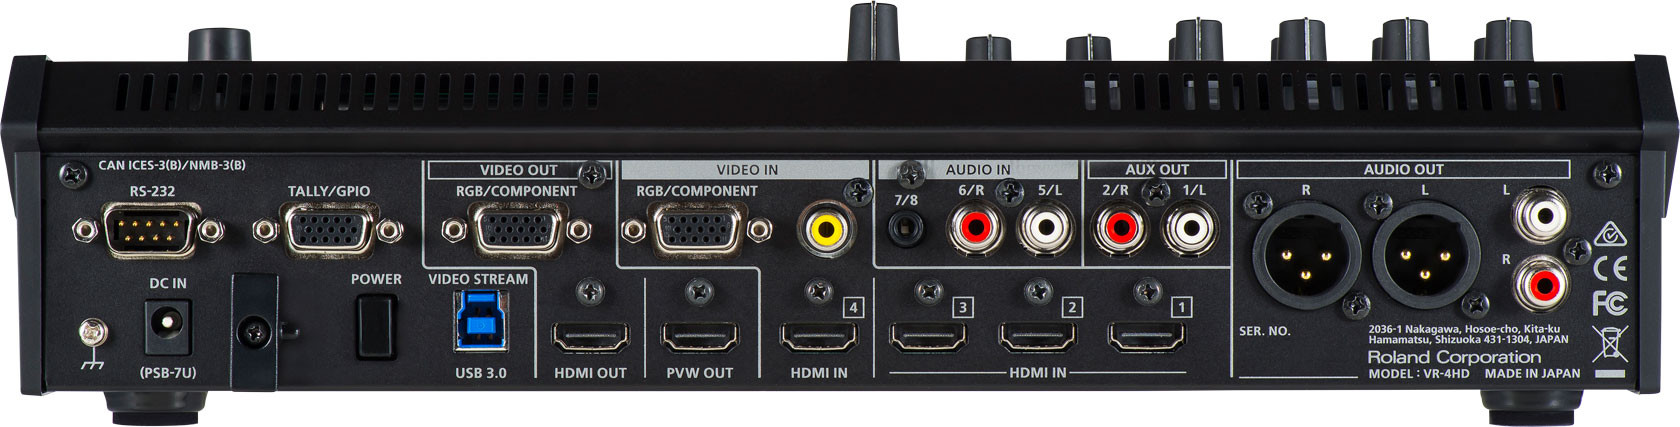 Roland Vr 4hd All In One Hd A V Mixer Planet Dj